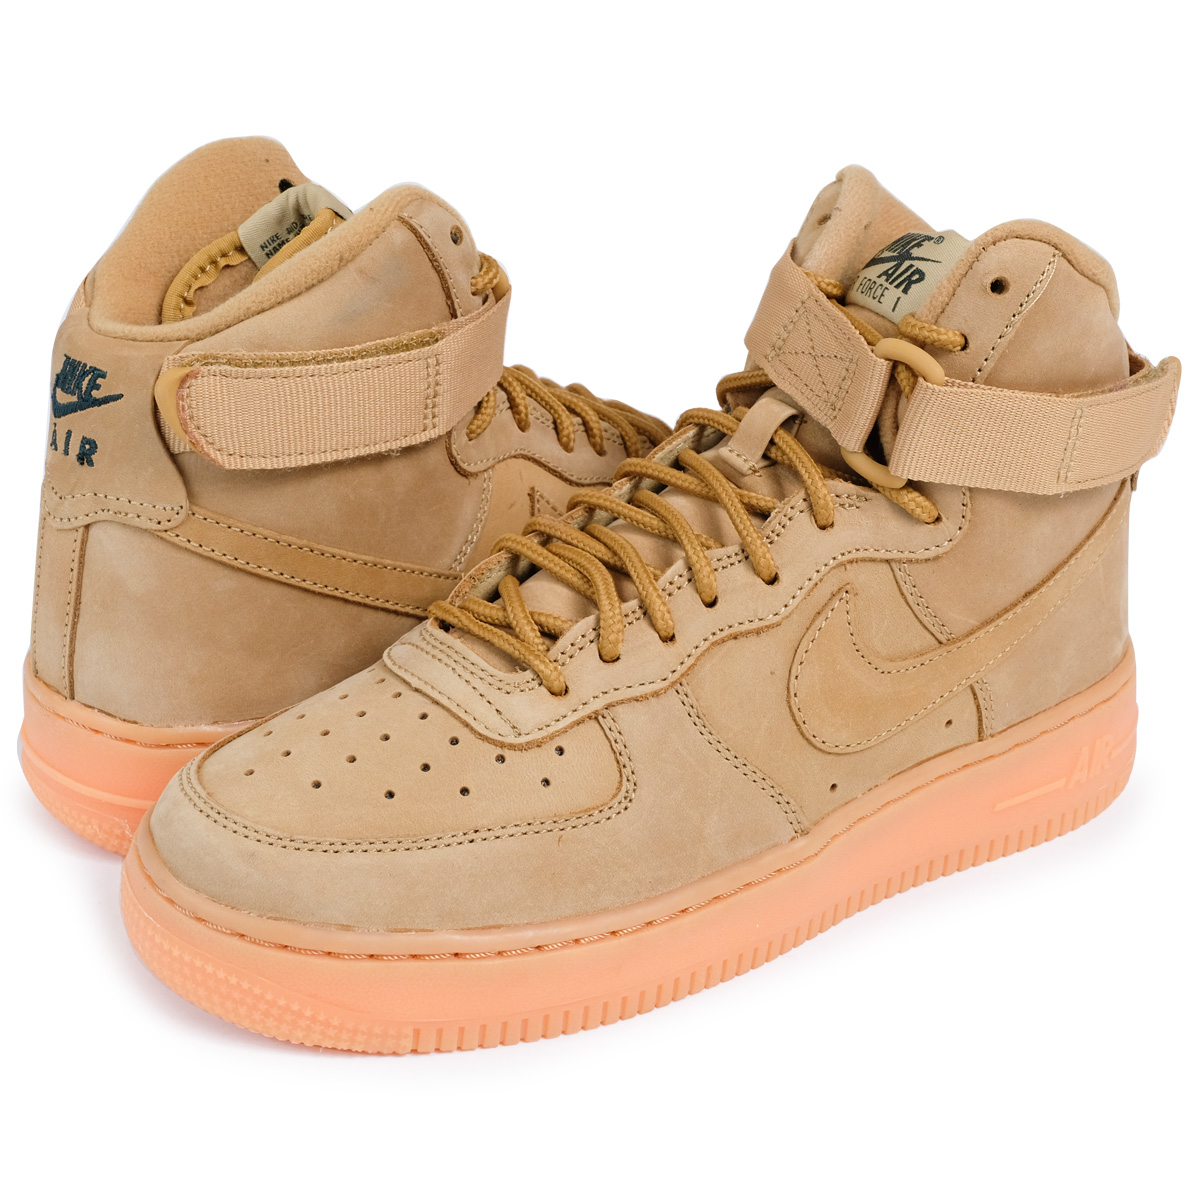 new arrival 060af f82d6 NIKE AIR FORCE 1 HIGH WB GS Nike air force 1 lady's sneakers 922,066-203  shoes ヌバックウィート [load planned Shinnyu load in reservation product 11/17 ...